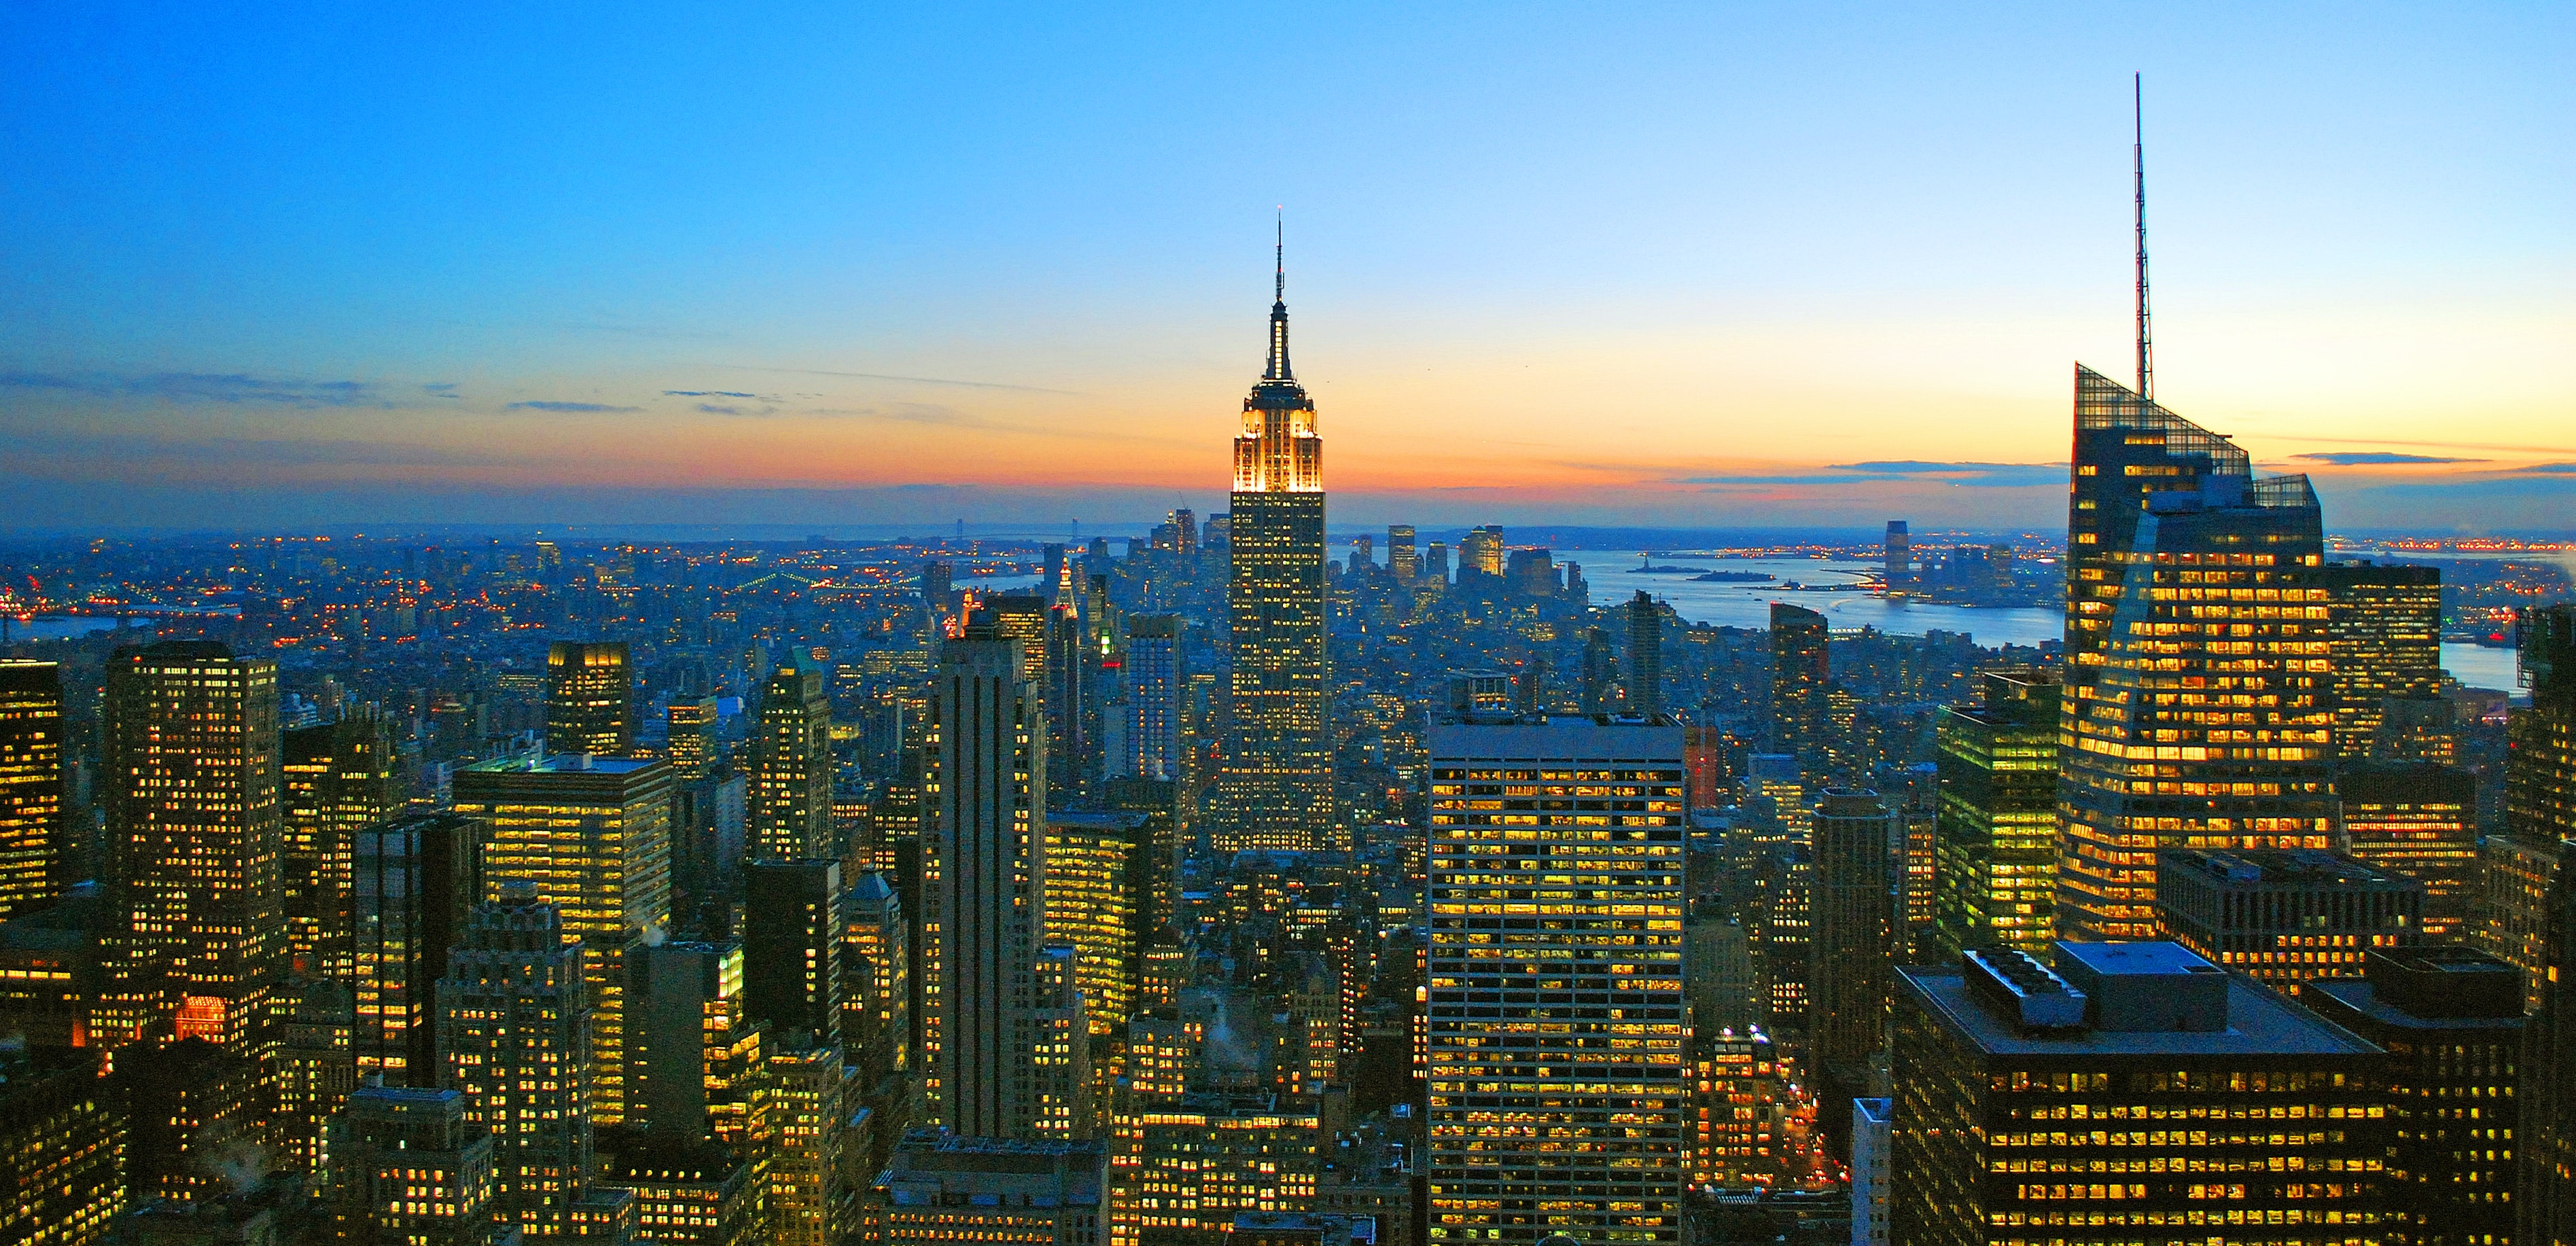 New York City skyline during sunset including the Chrysler building